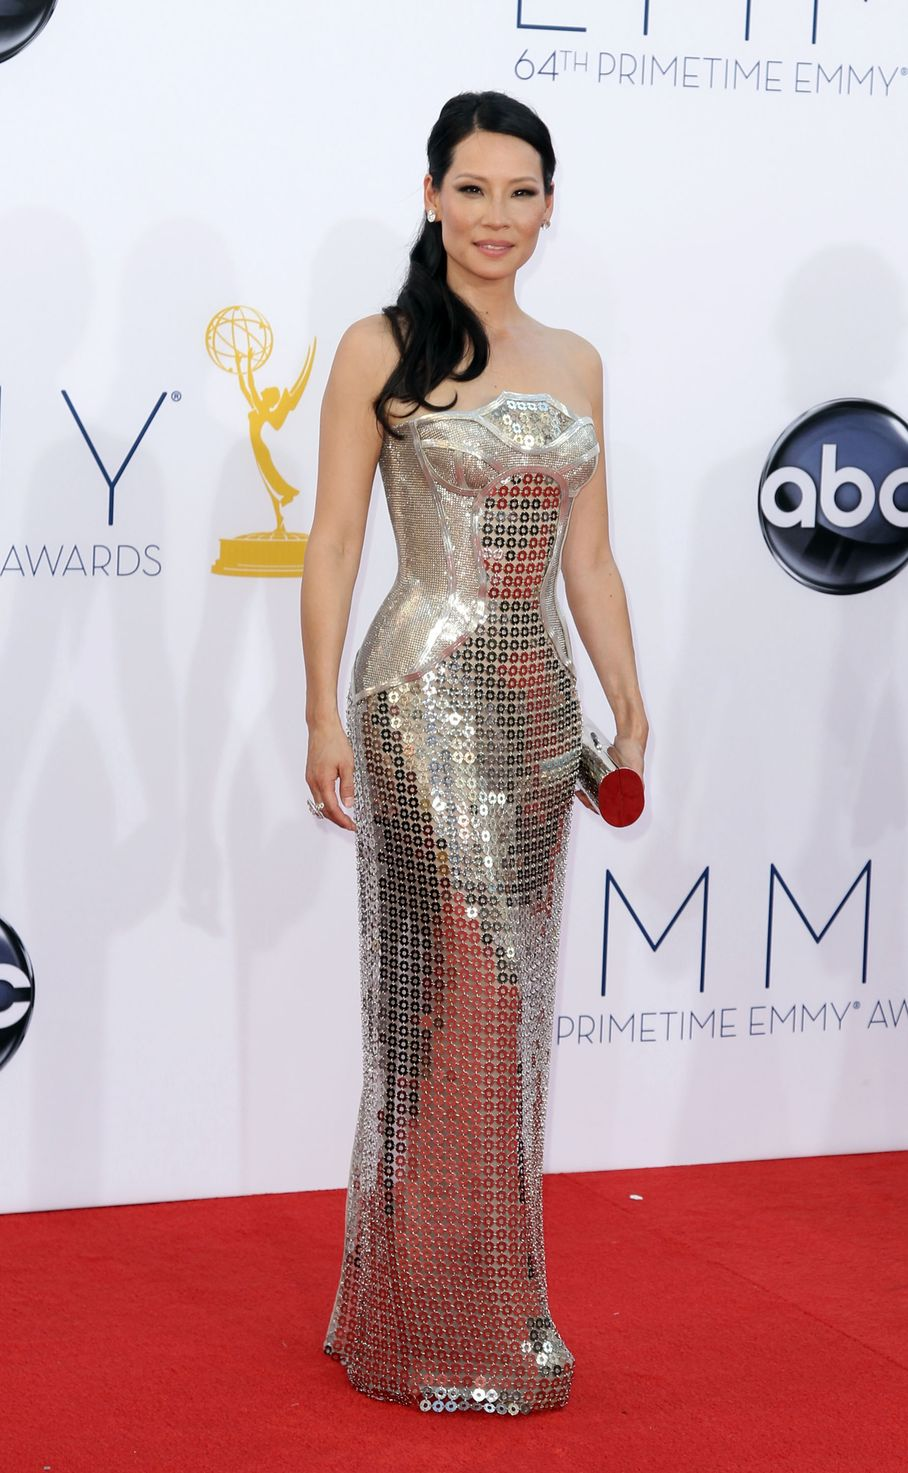 Lucy Liu - 2012 Emmy Awards, Red Carpet Looks